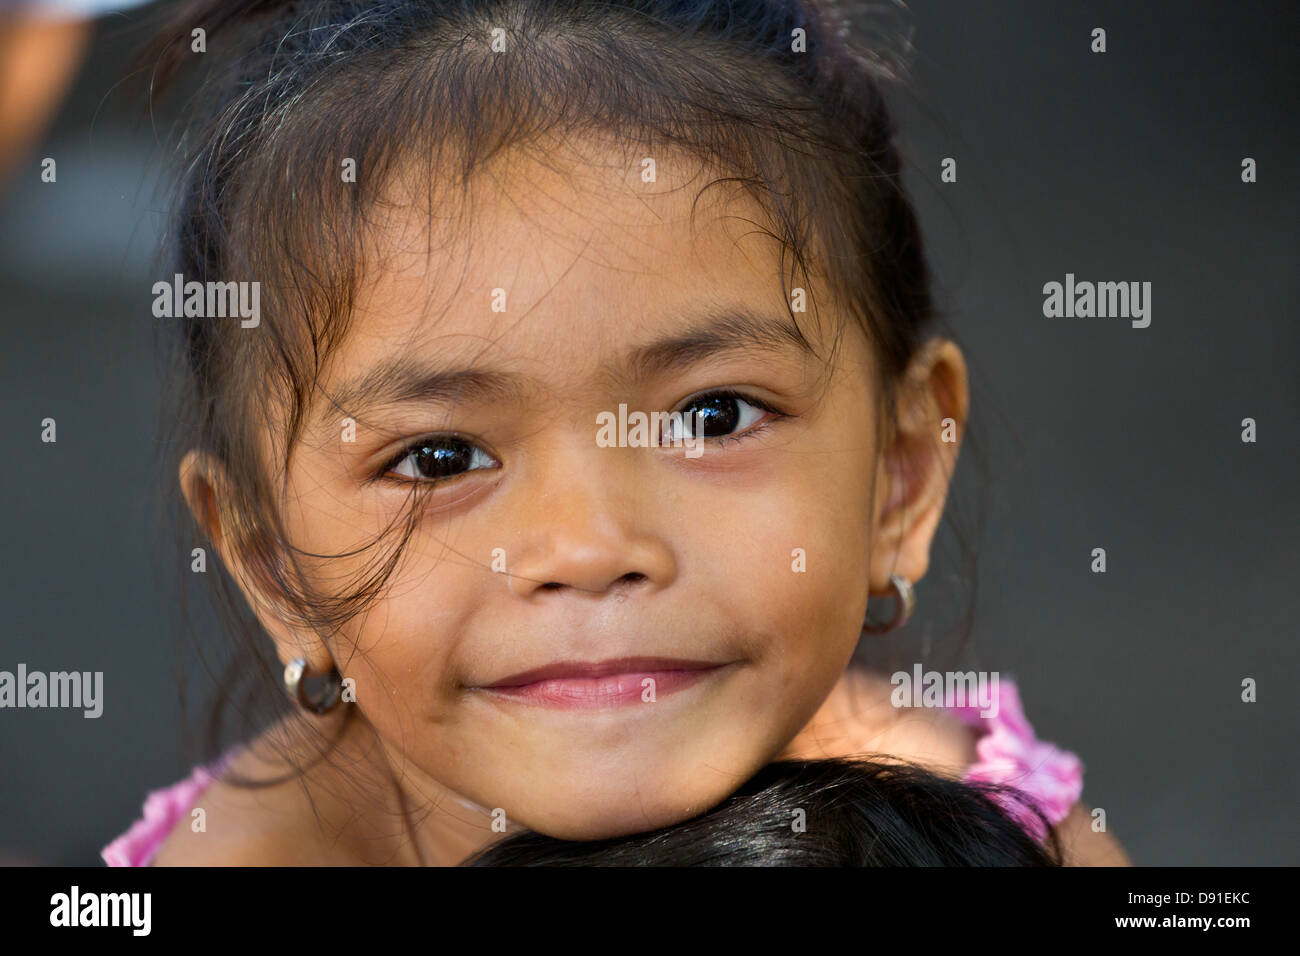 Young girl in manilla